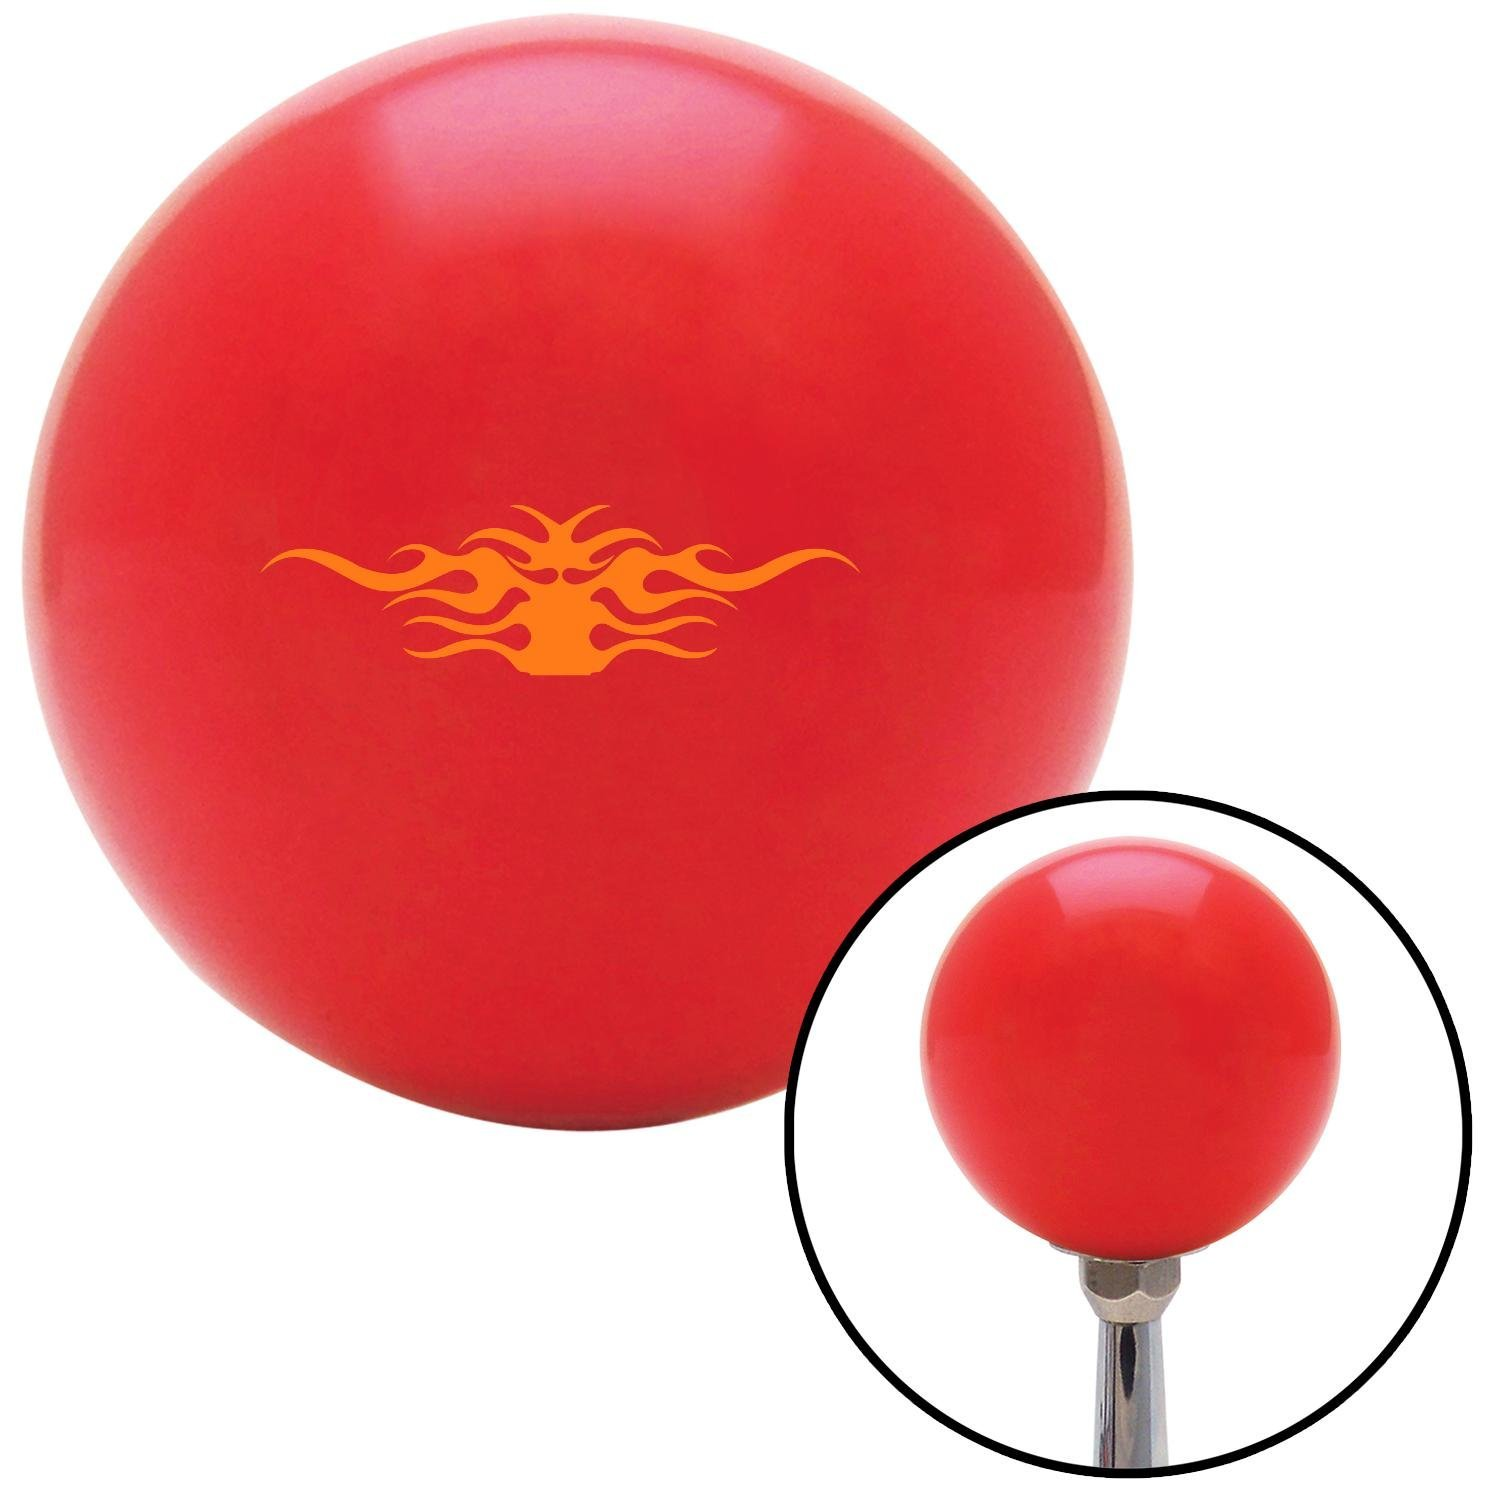 American Shifter 95171 Red Shift Knob with M16 x 1.5 Insert Orange Tribal Flames